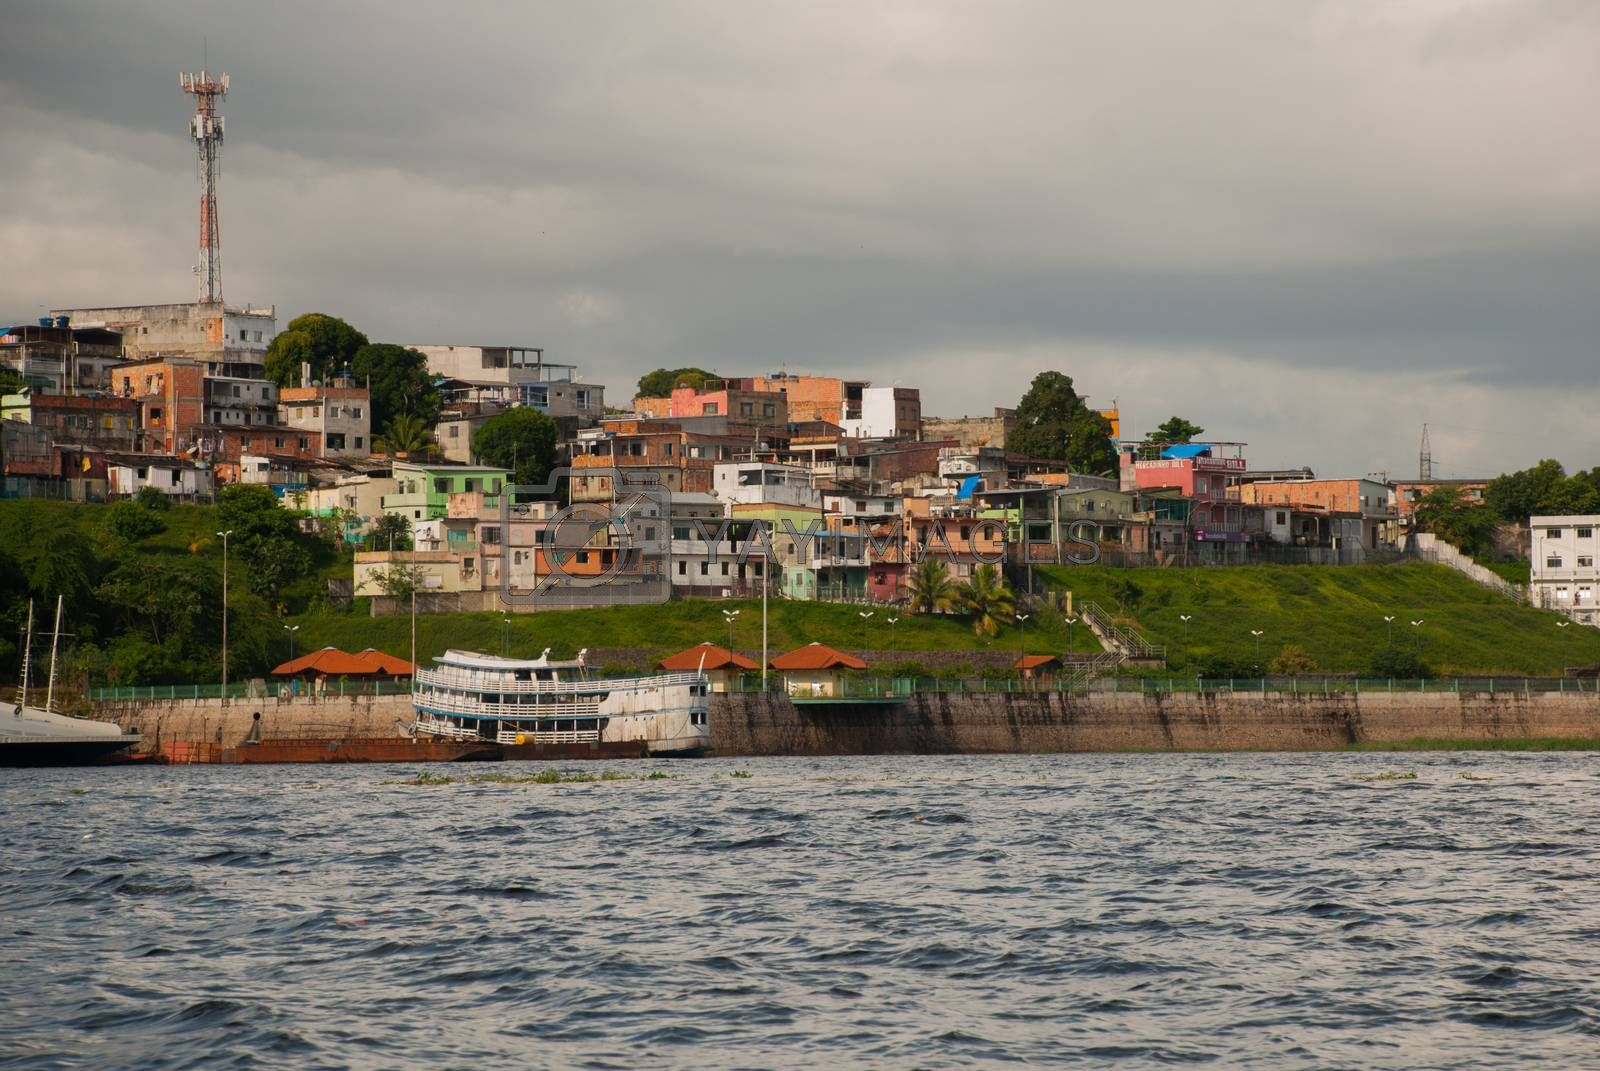 Manaus, Amazonas, Brazil, South America: Popular tourist trip on the ship. View from the boat to the port city of Manaus.